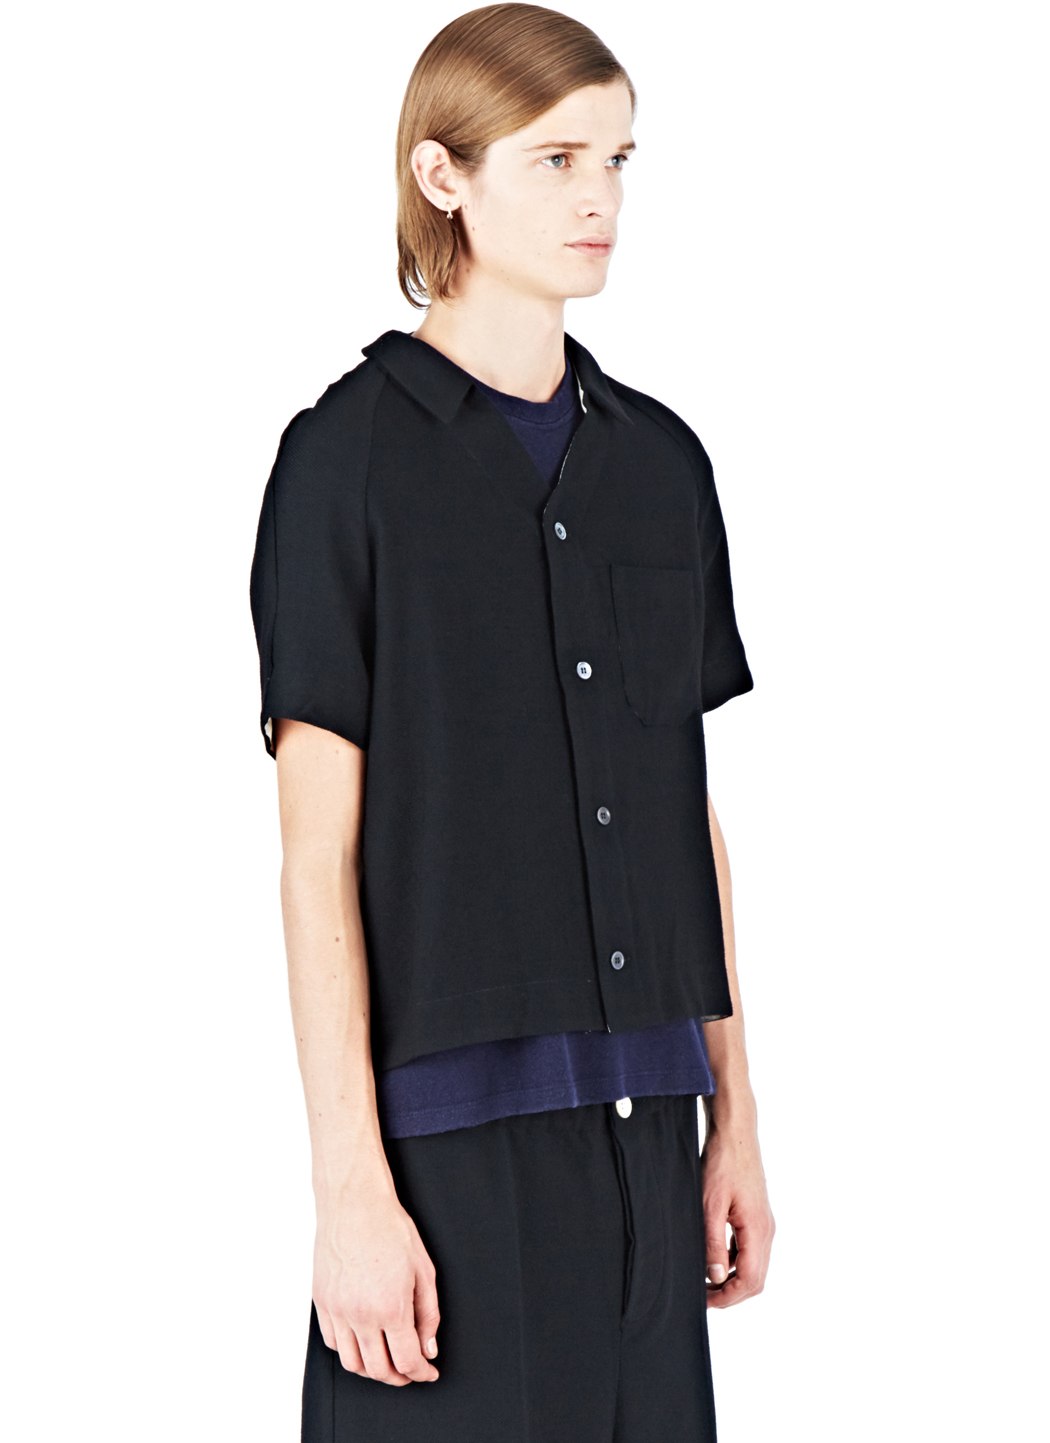 Outlet Browse SHIRTS - Shirts Marvielab Free Shipping Cheapest Price 2YbTqE97